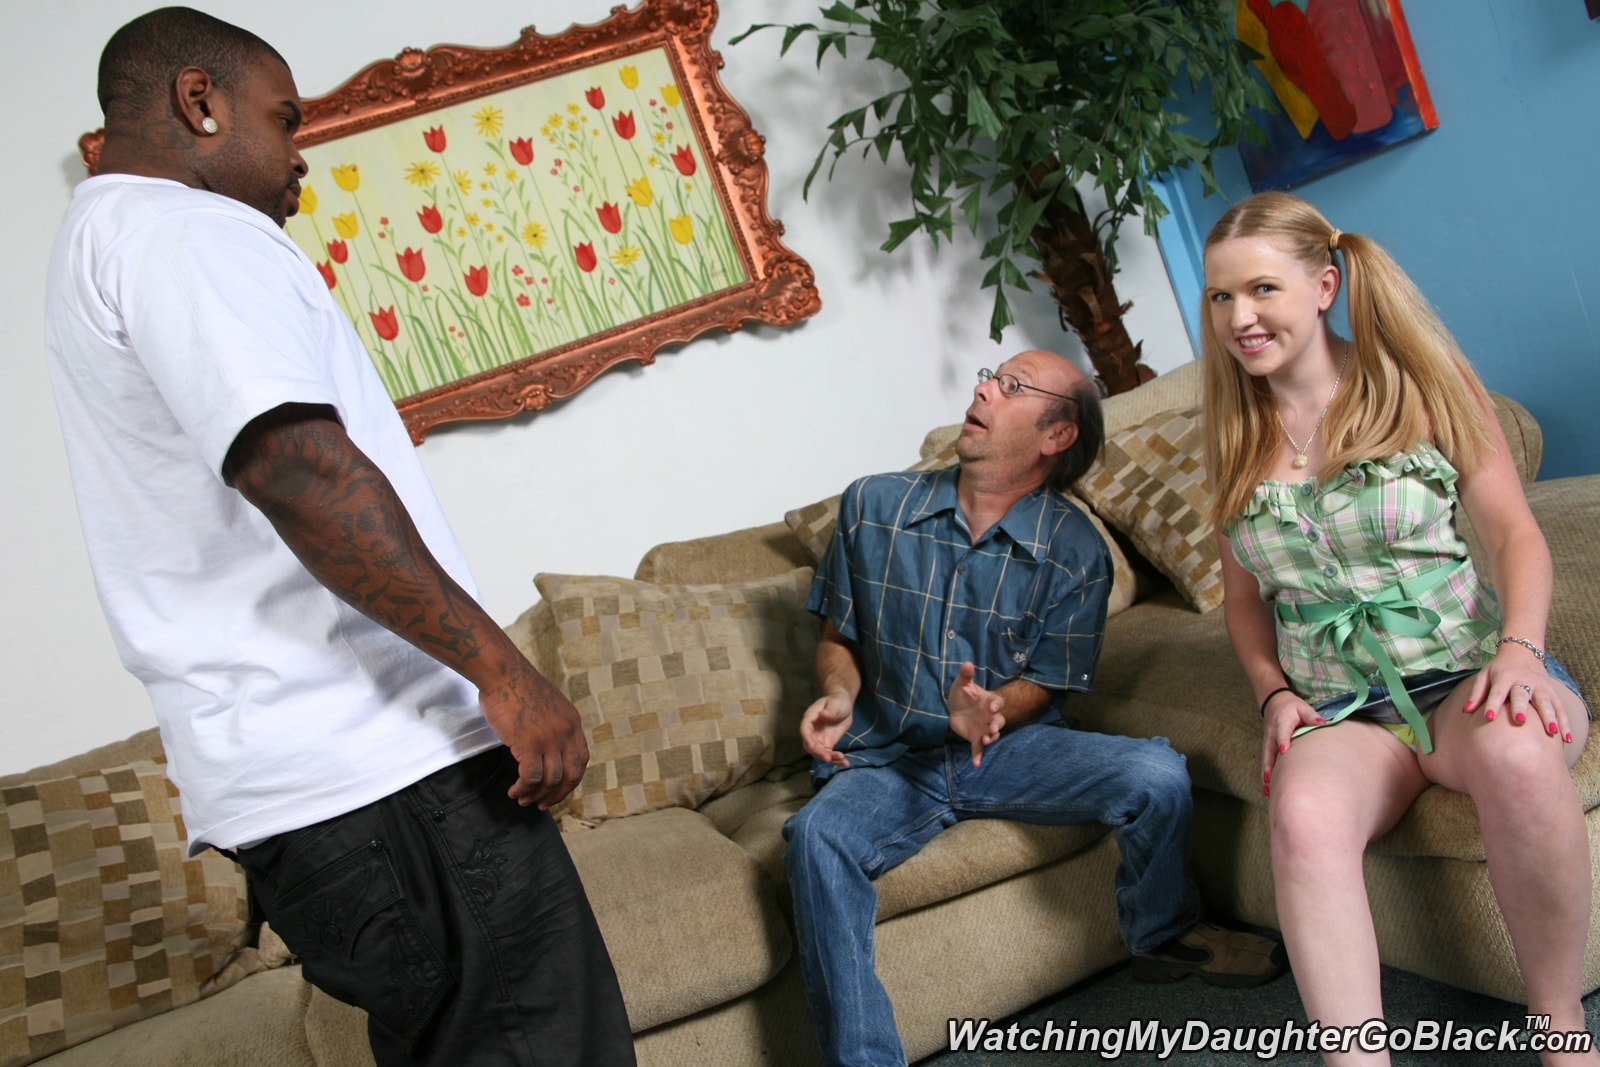 Dogfart 'Laci Laine - Watching My Daughter Go Black' starring Laci Laine (photo 2)